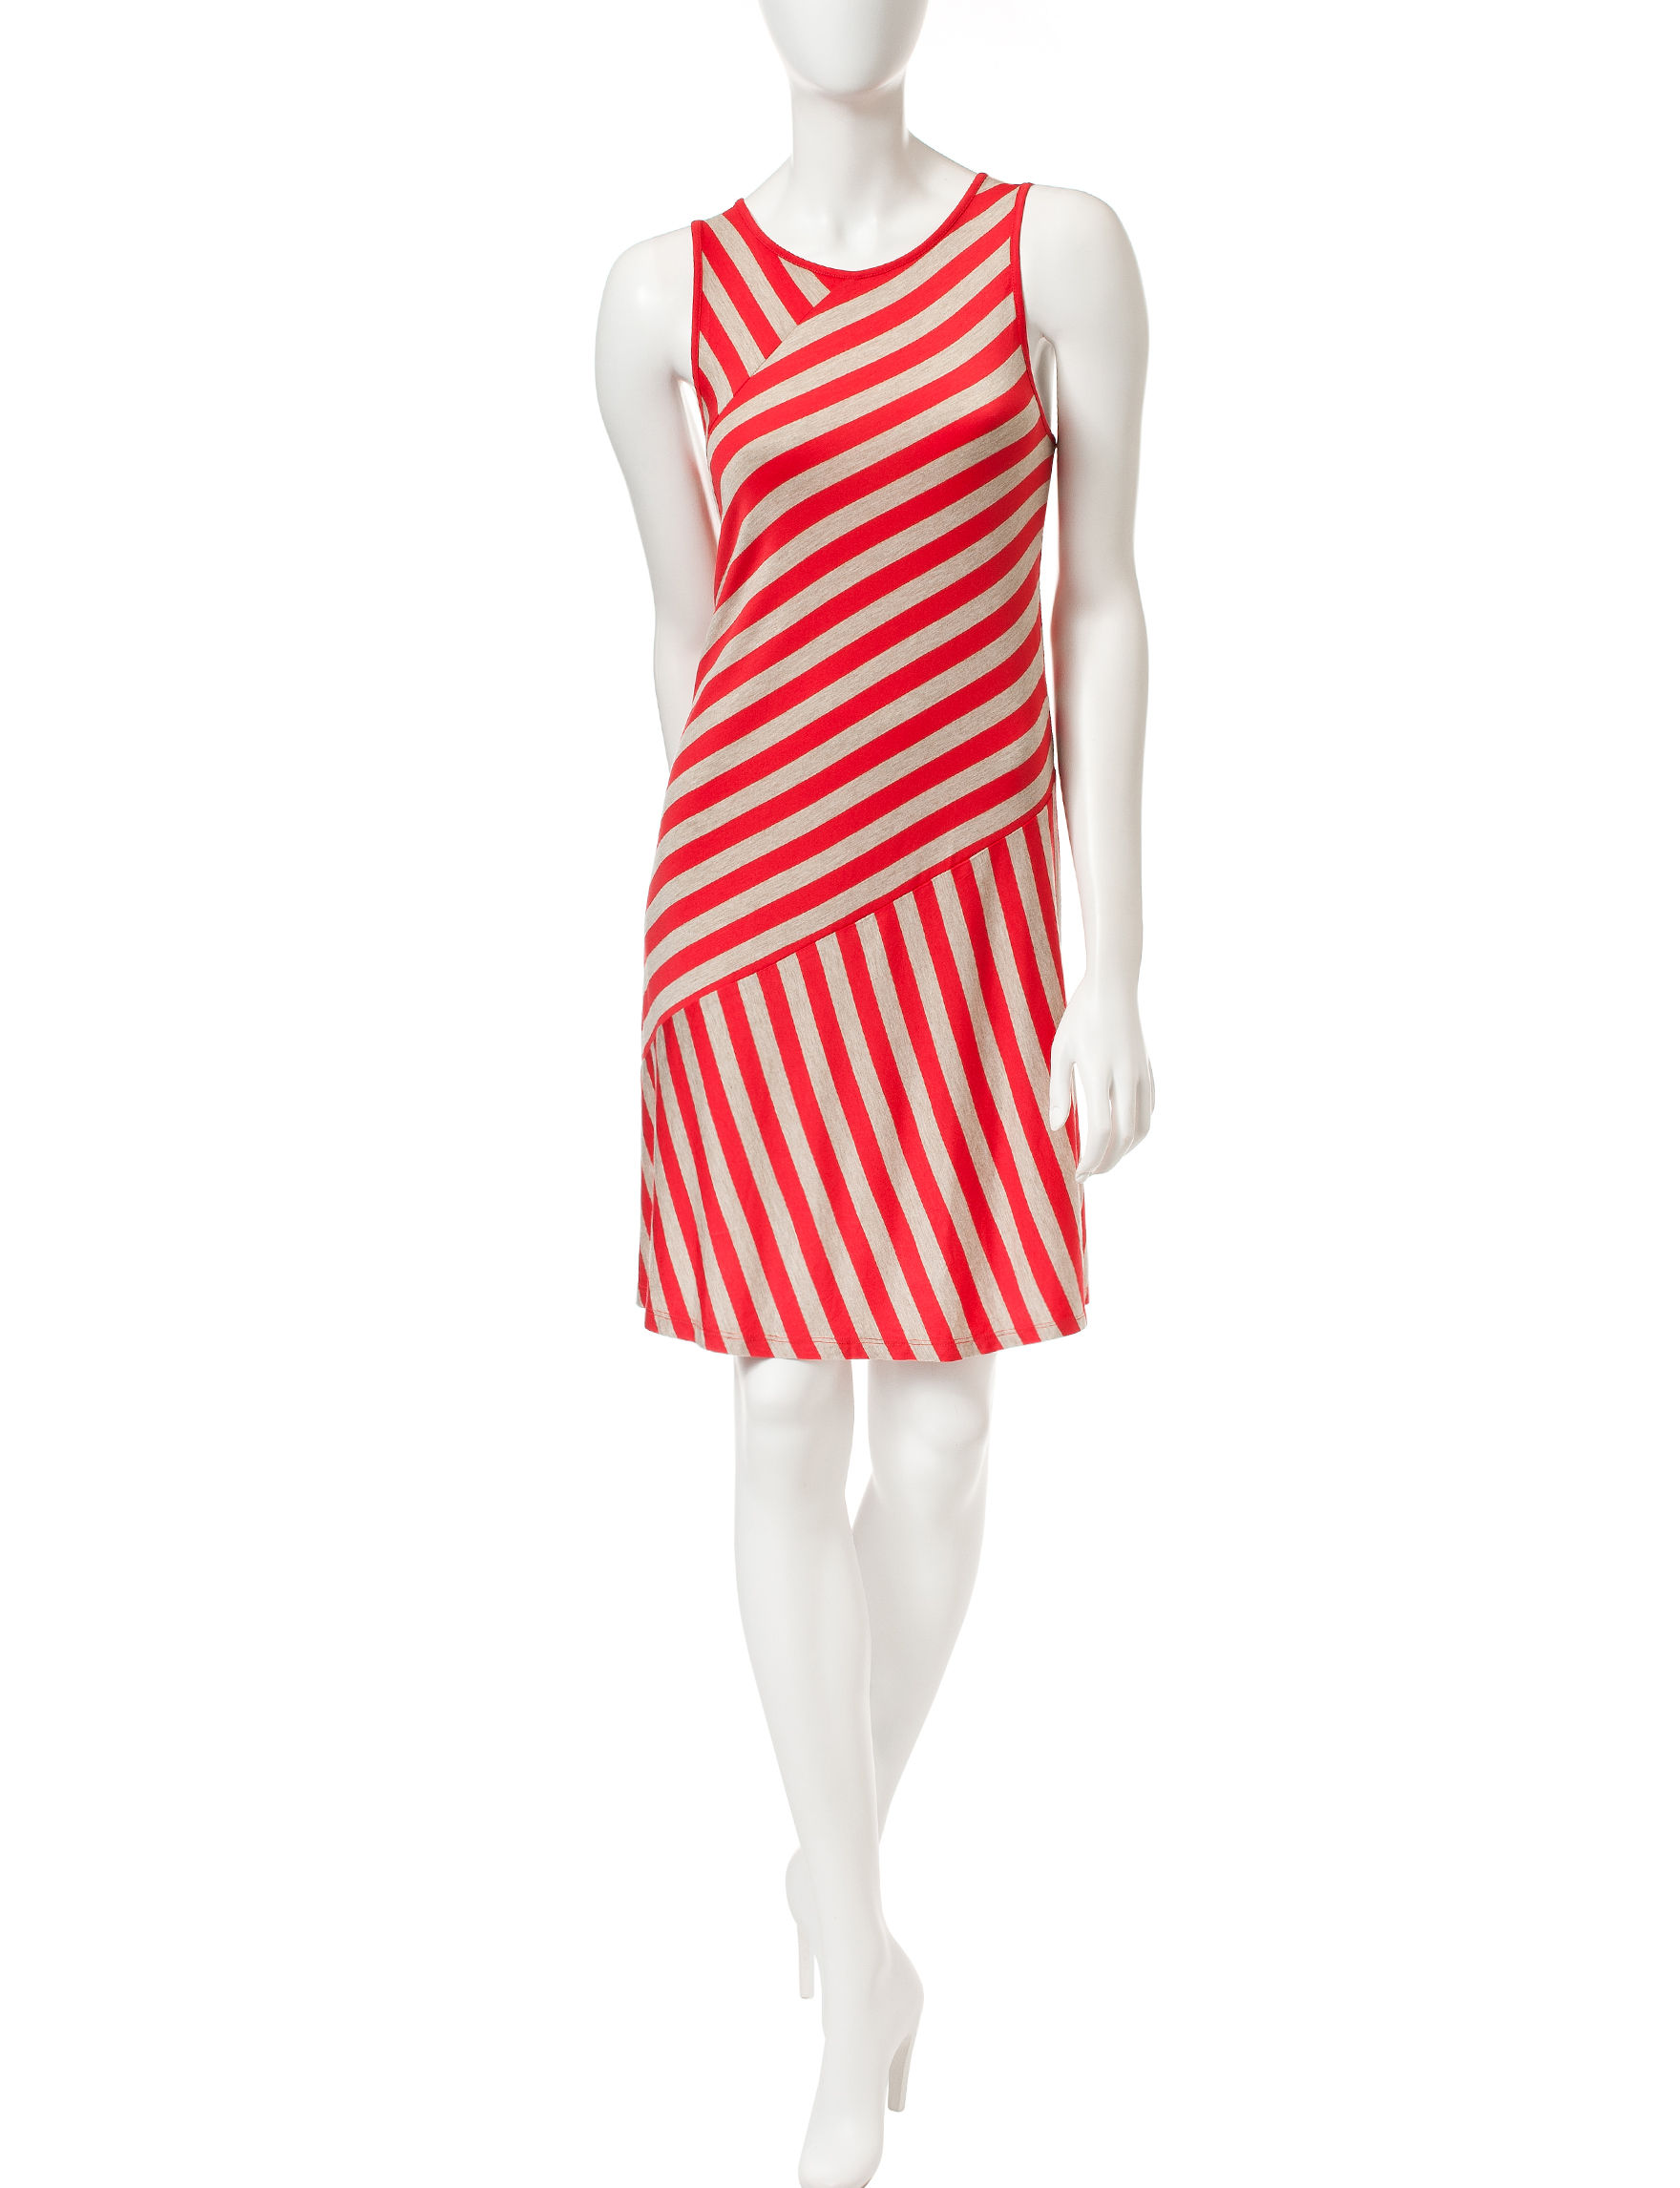 Kensie Red Everyday & Casual Shift Dresses